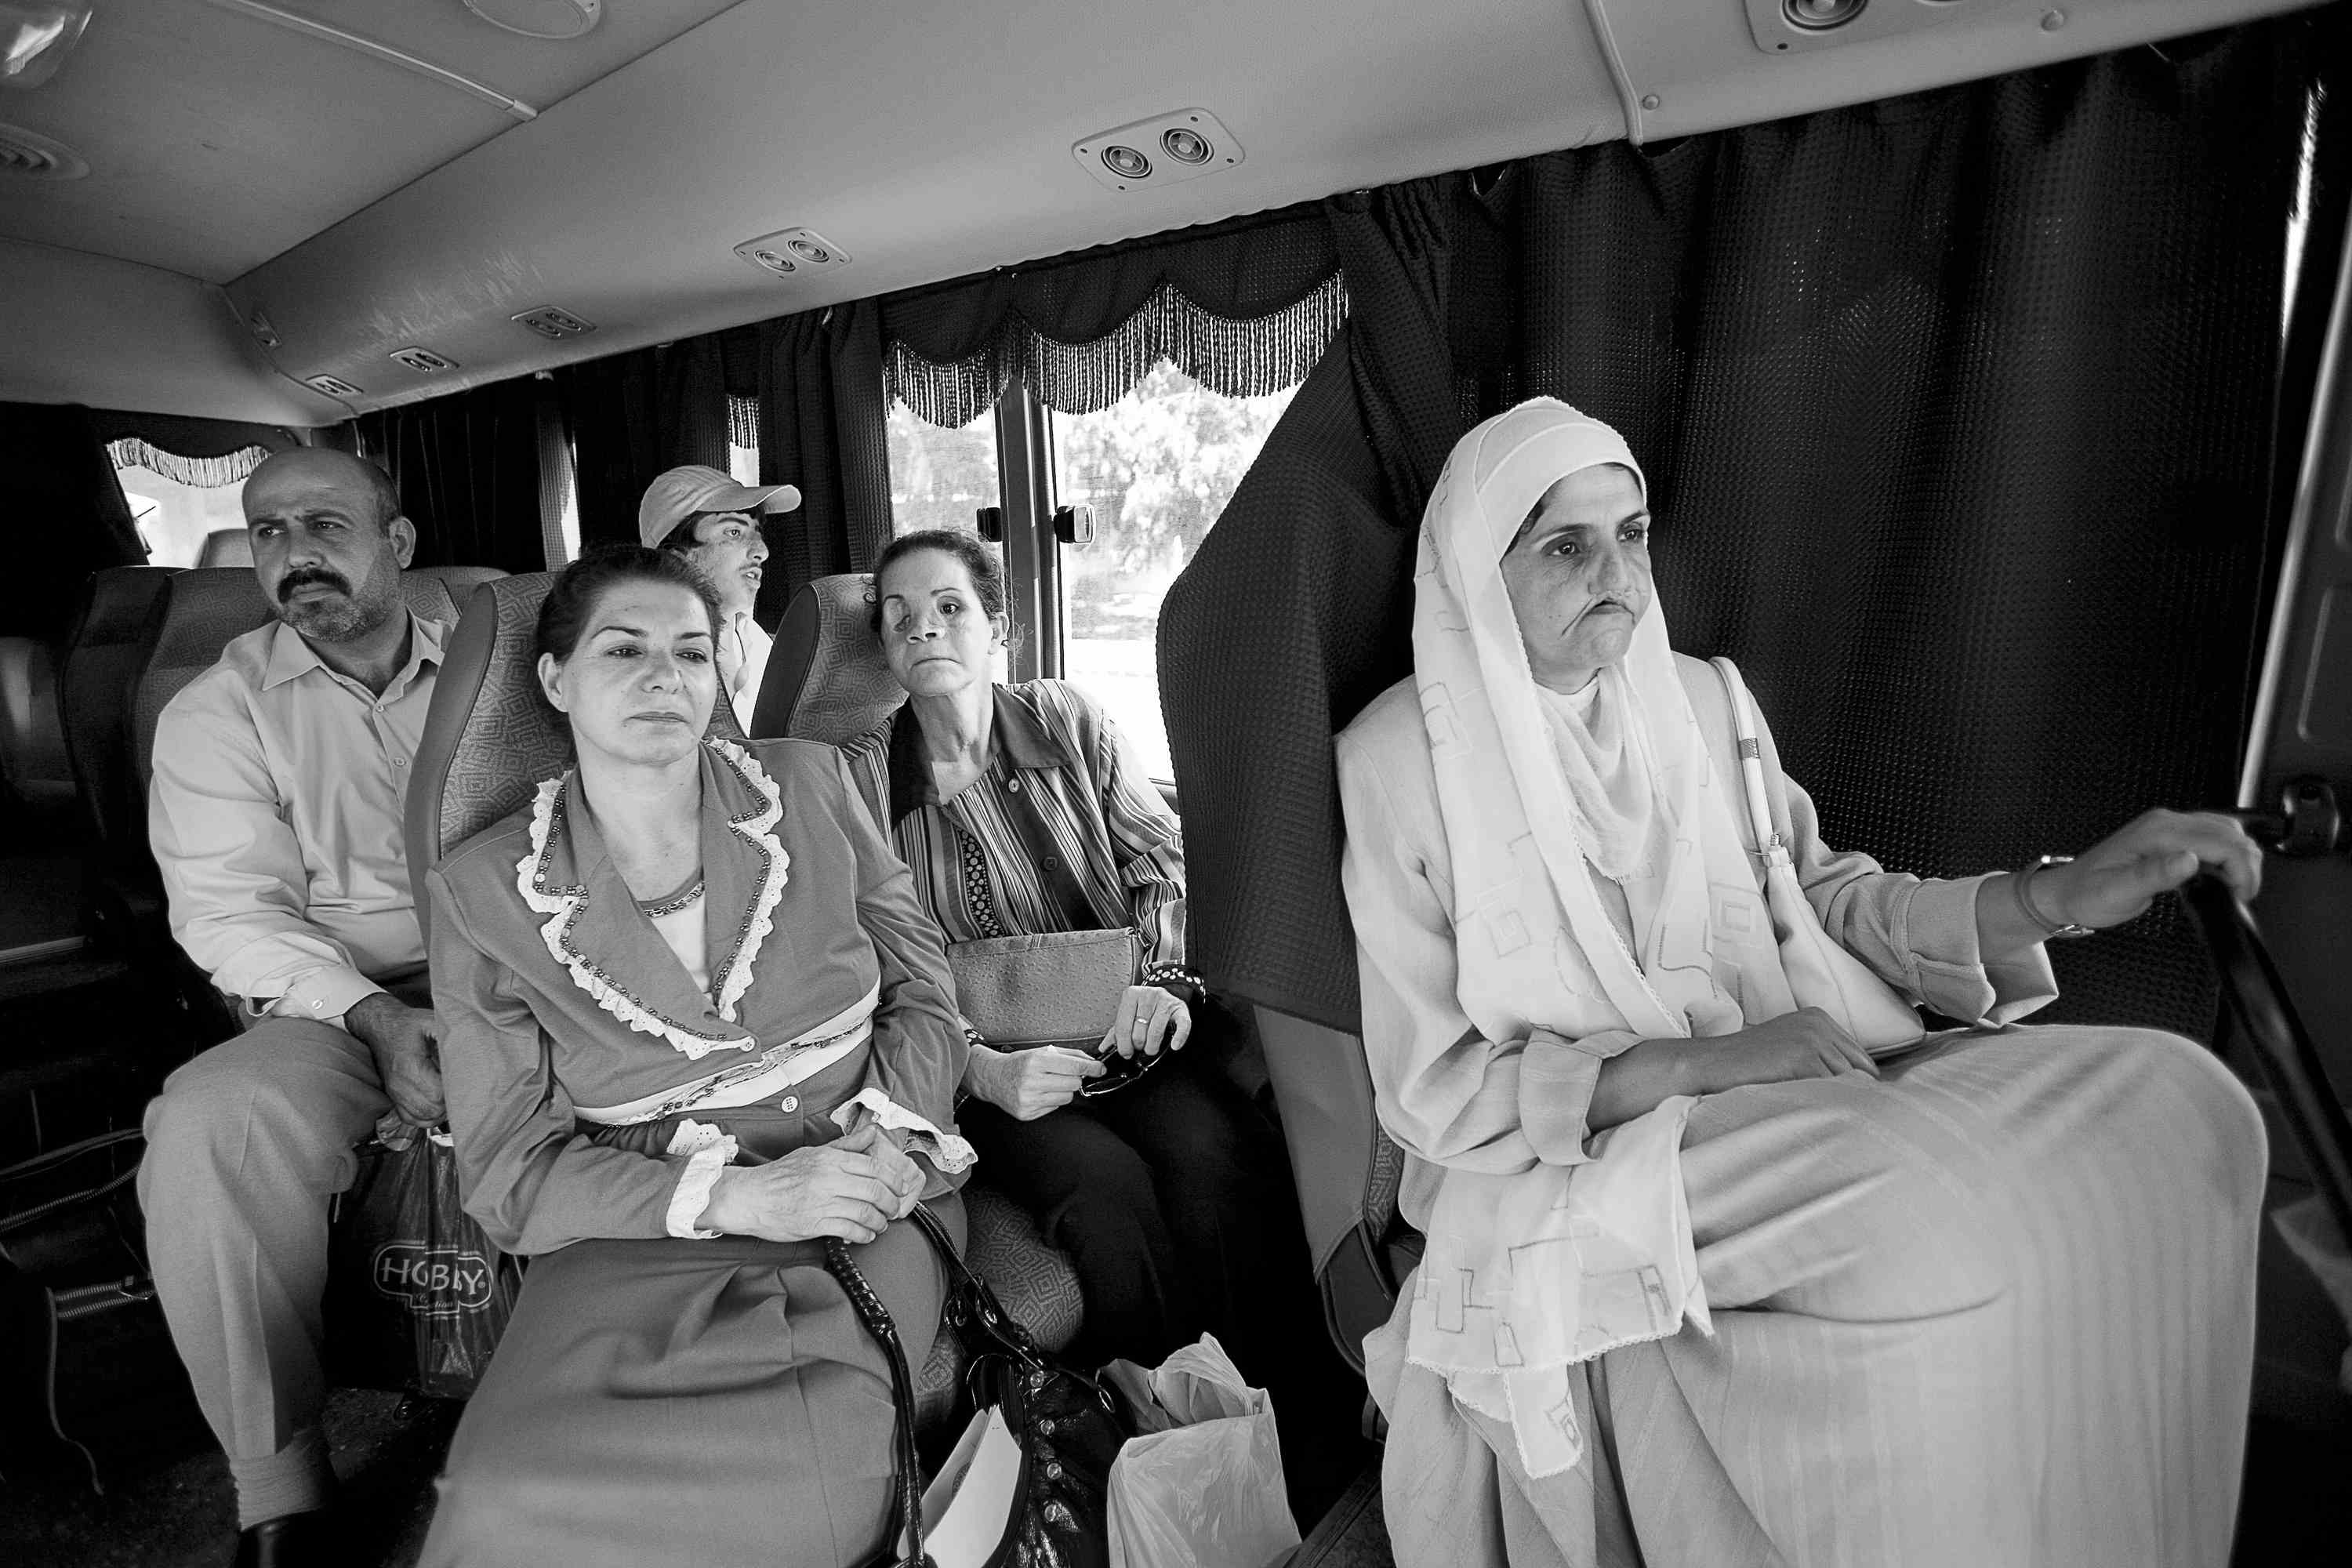 Lori Grinker,  Untitled: Bus ride from airport. Wounded Iraqis on their way to Jordan for treatment by Doctors Without Borders at the Red Crescent Hospital in Amman, Jordan, September 2007.